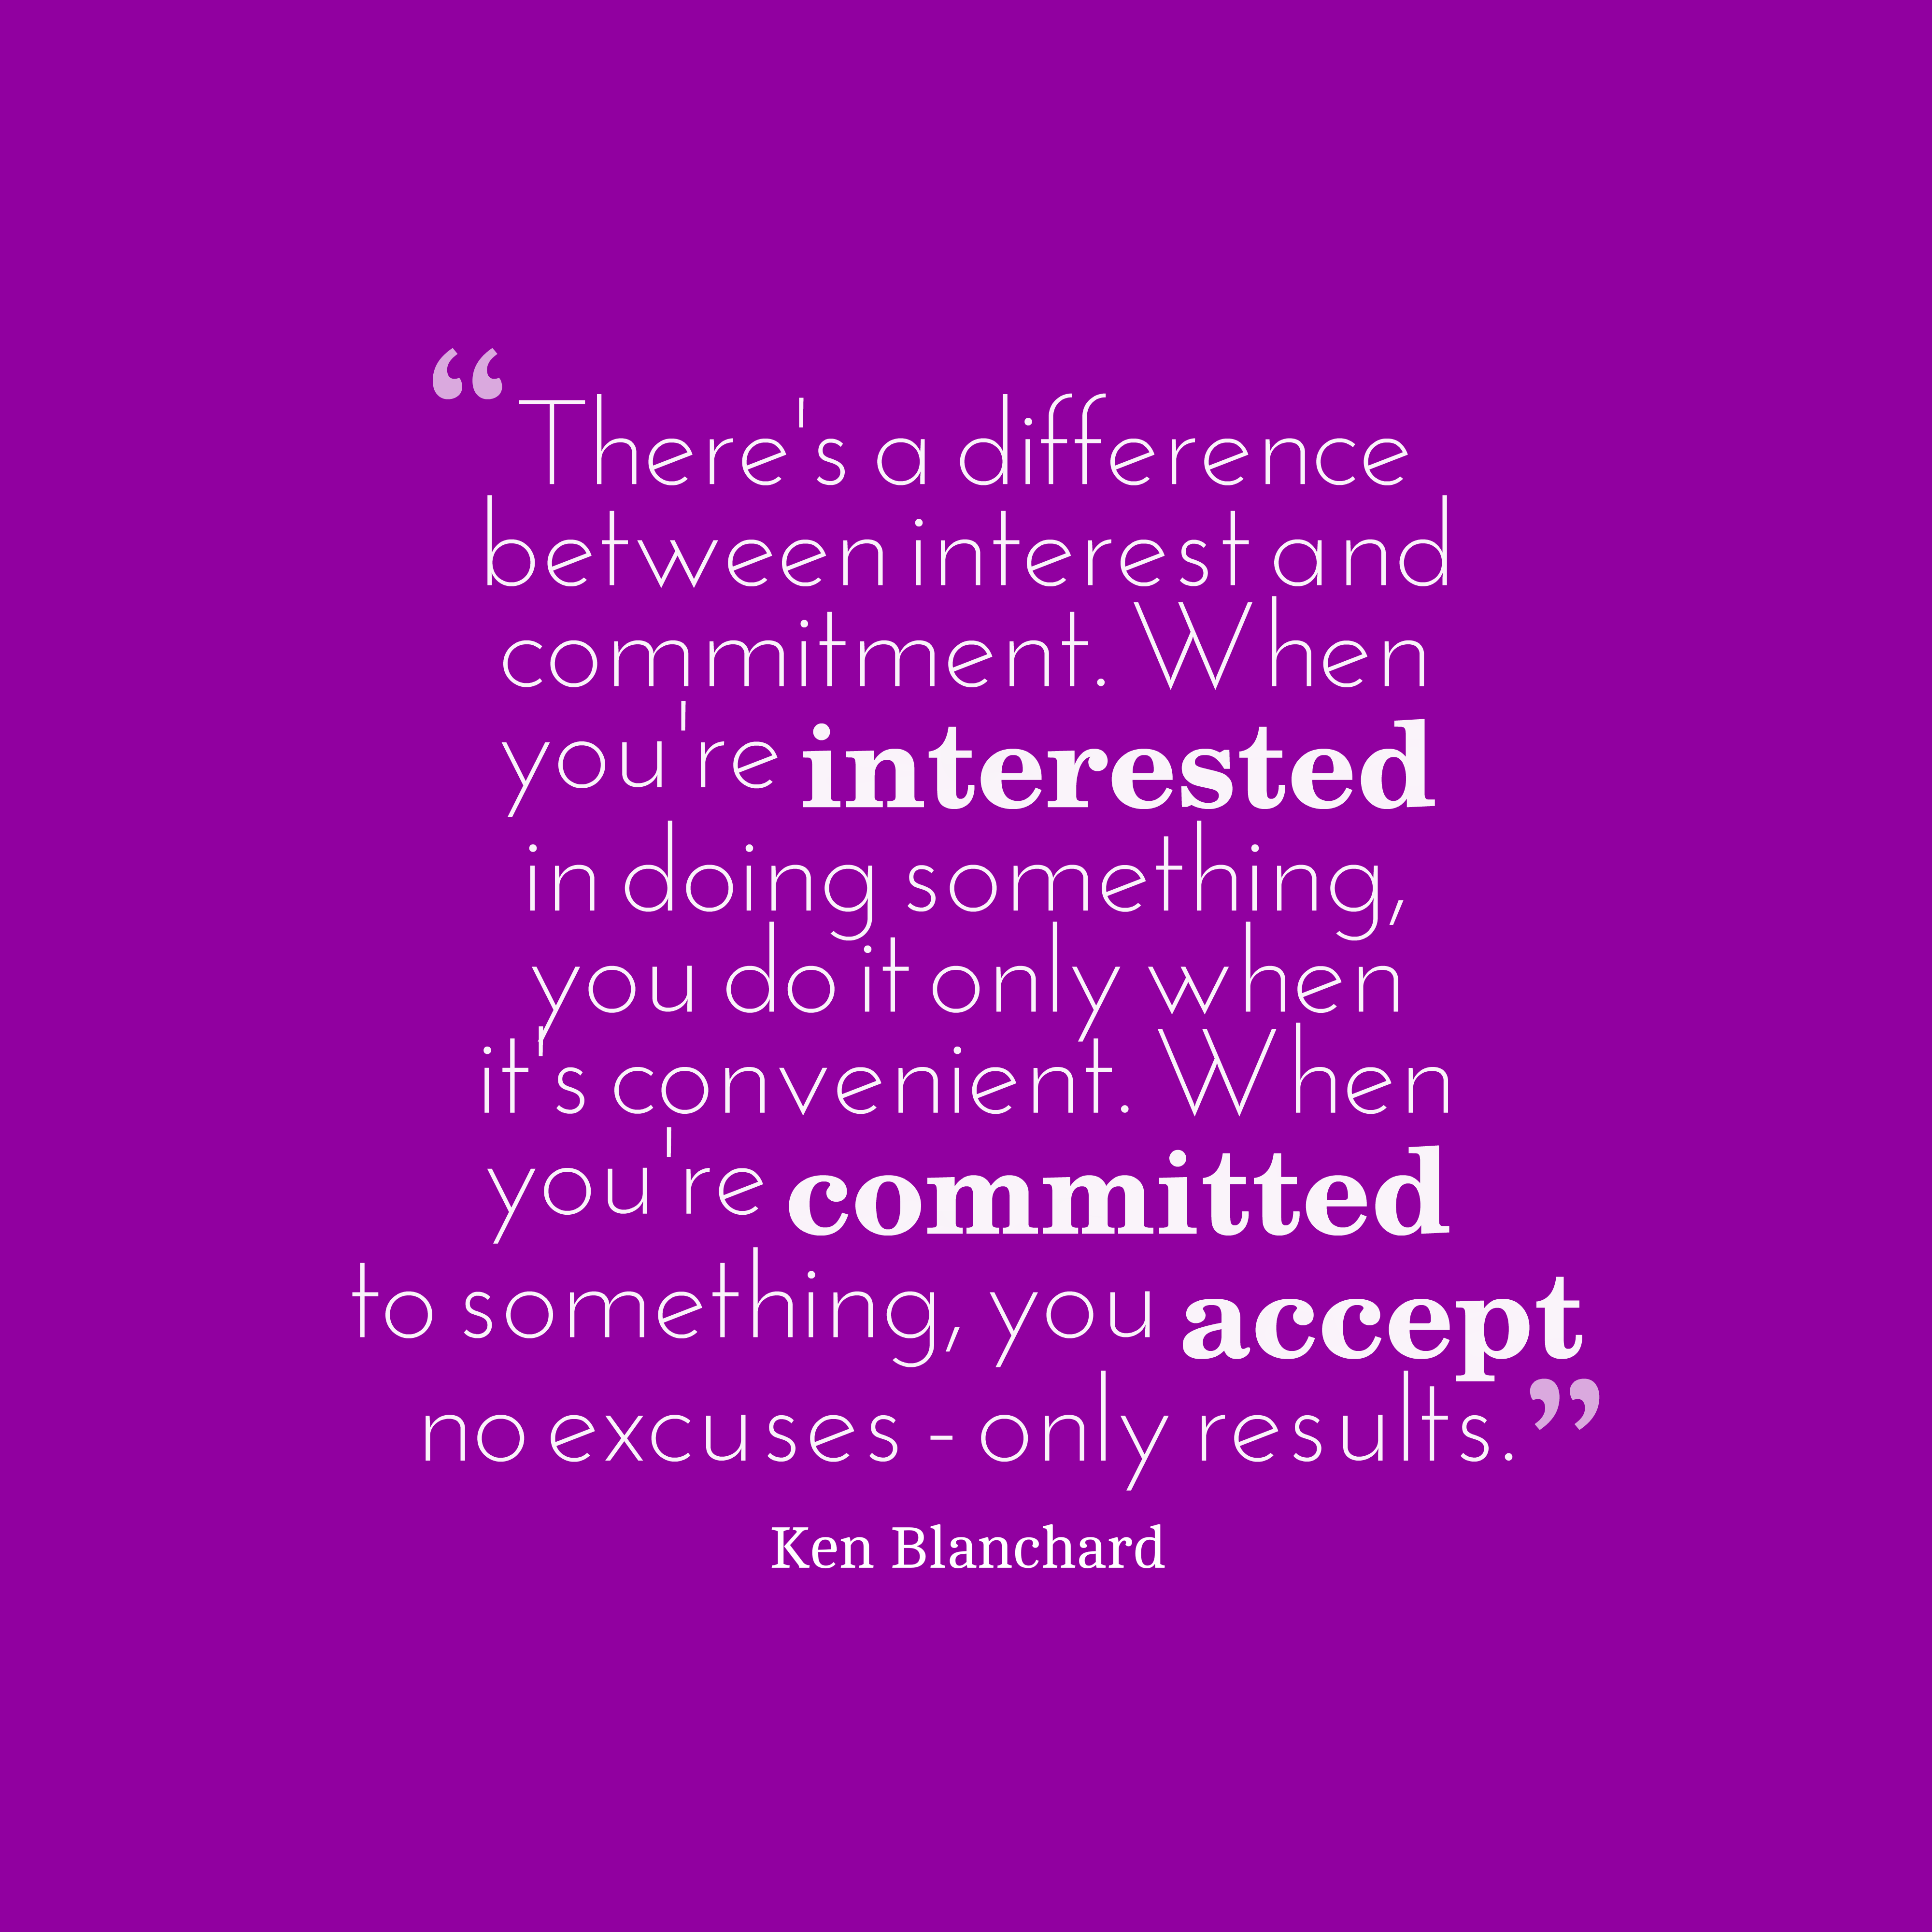 Ken Blanchard quote about commitment.